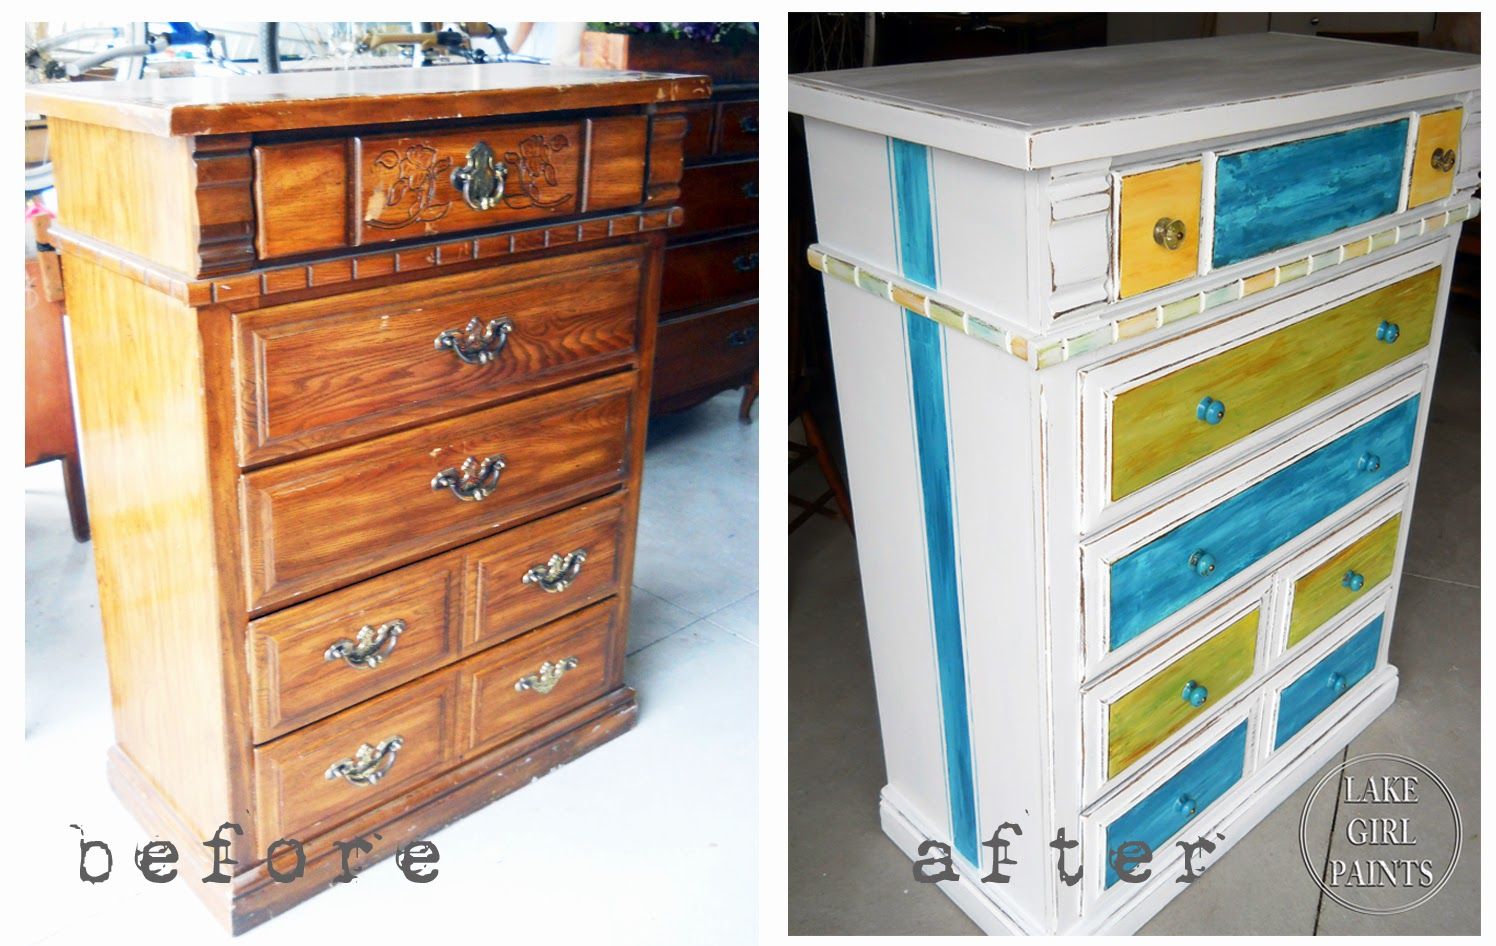 Lake Girl Paints: Dresser Makeover - Brown to White Beach Style